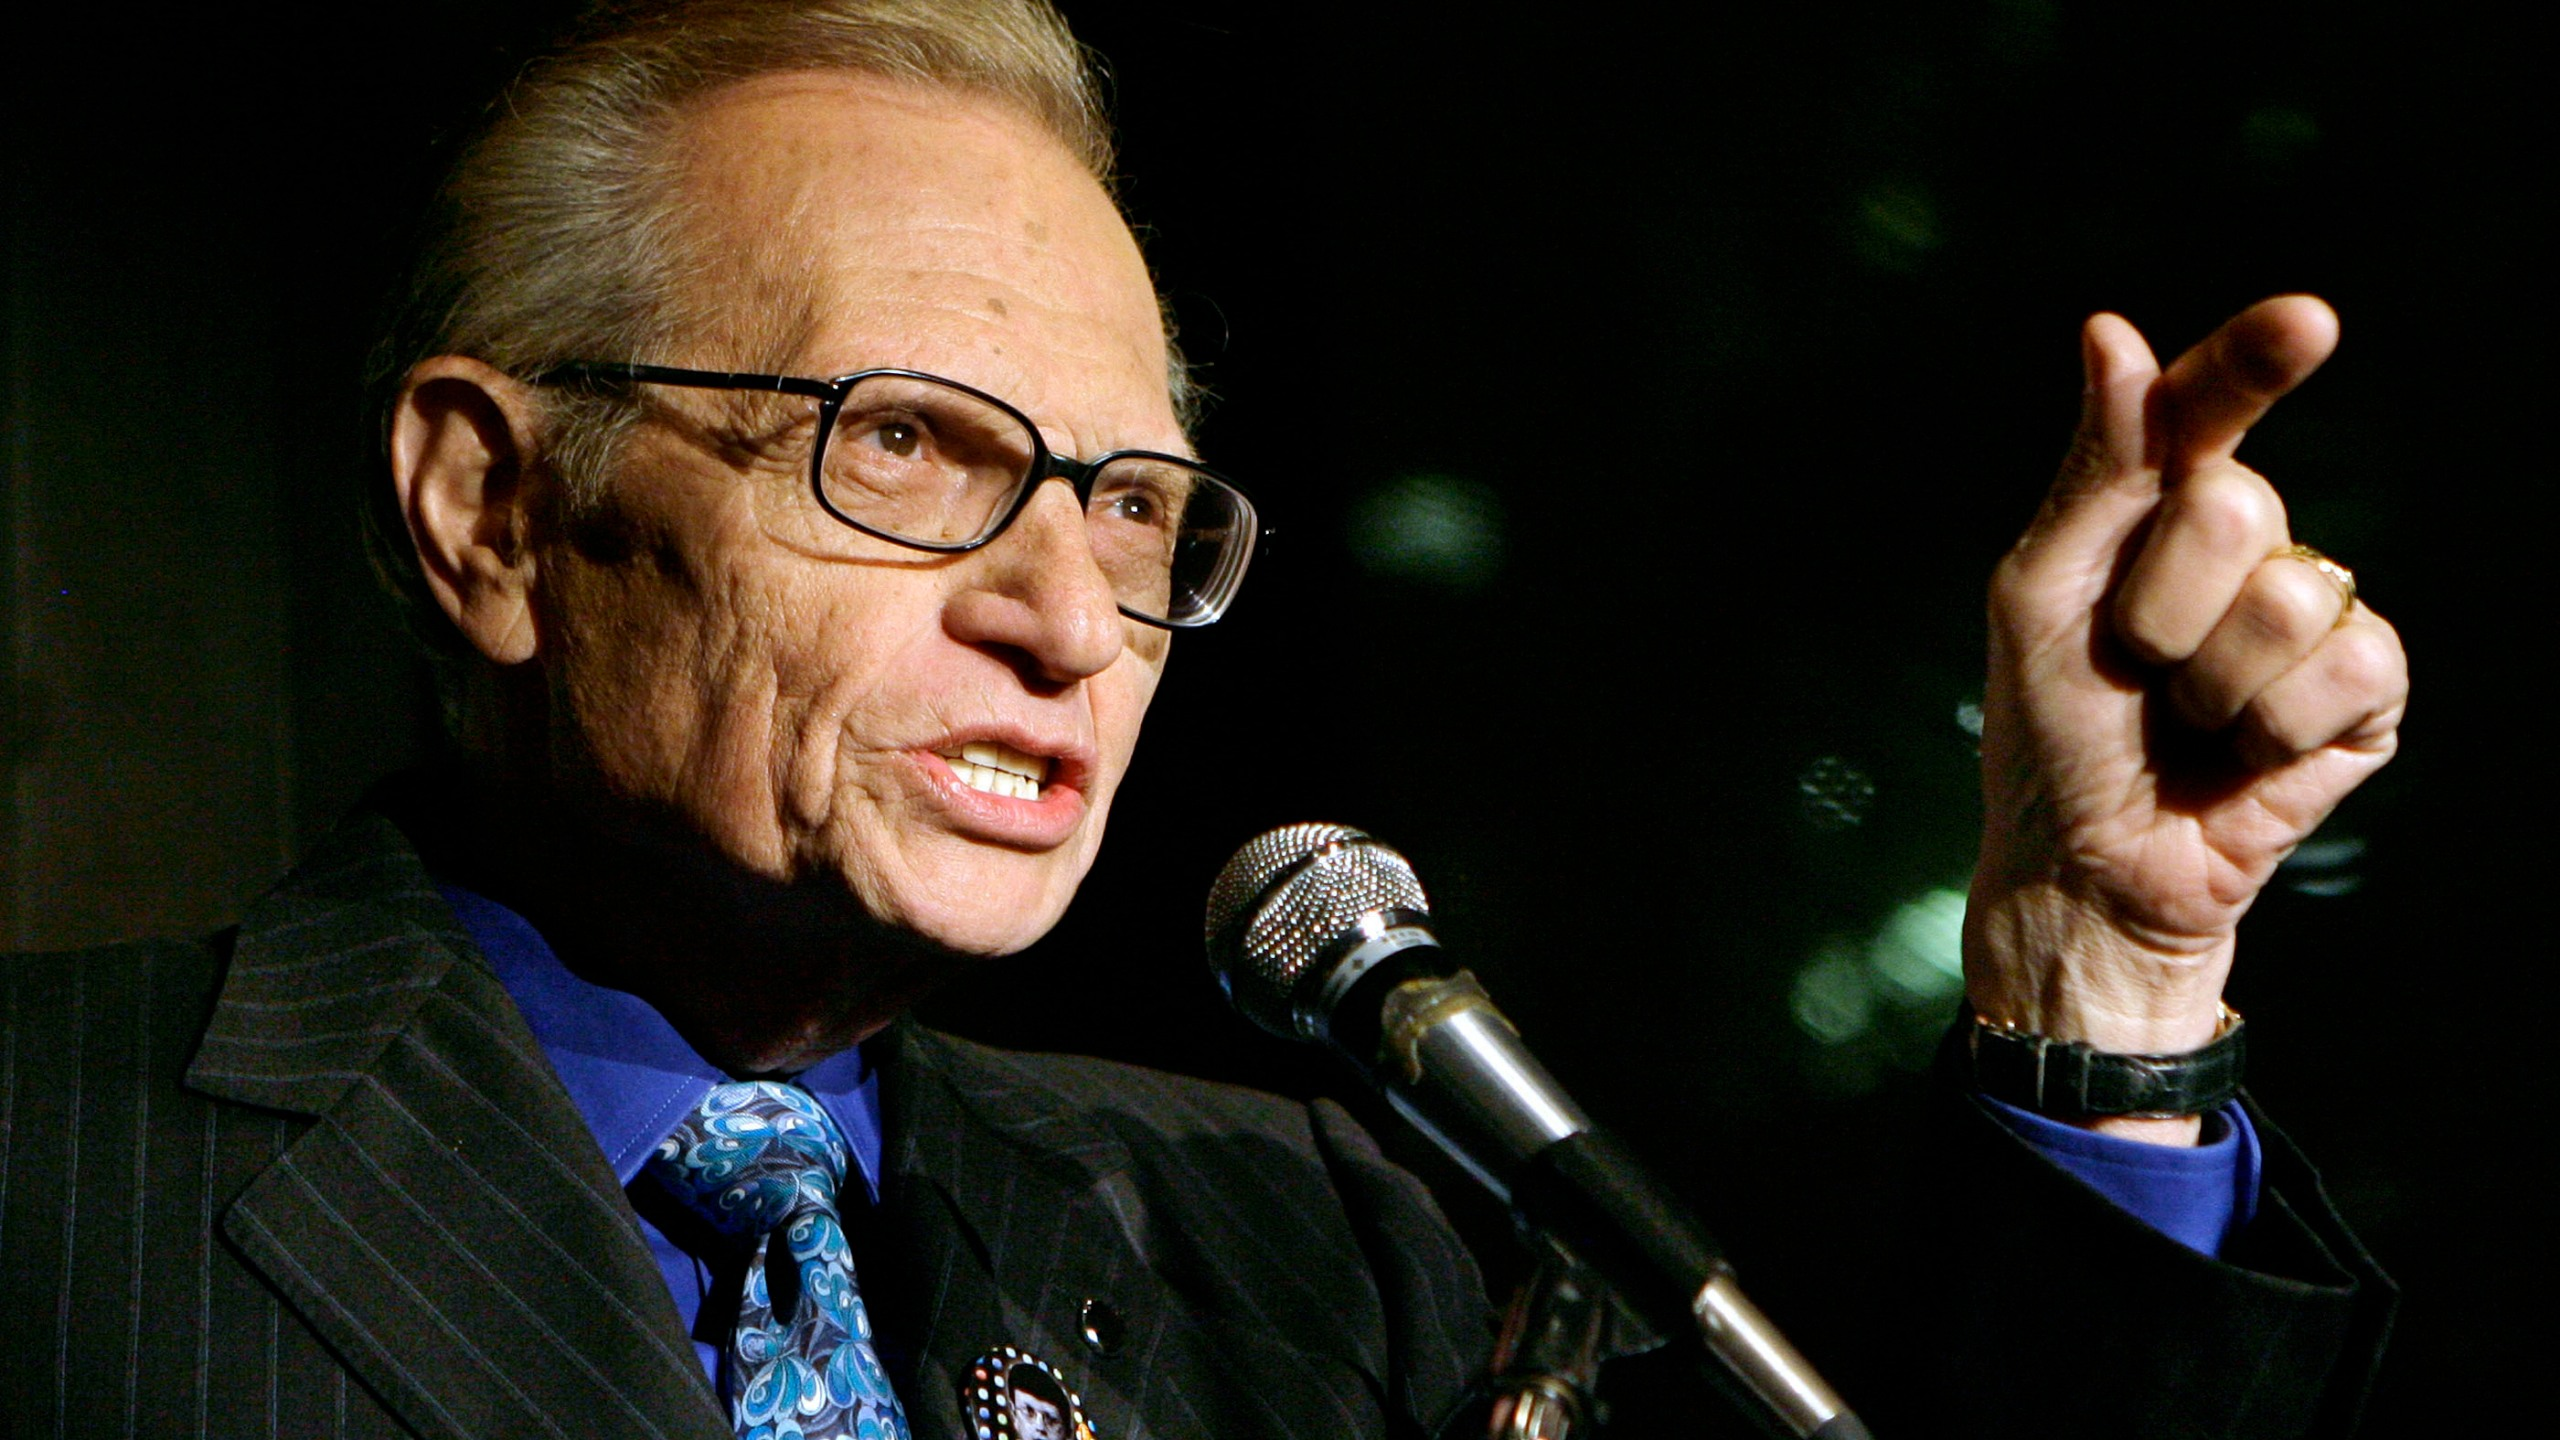 Larry King